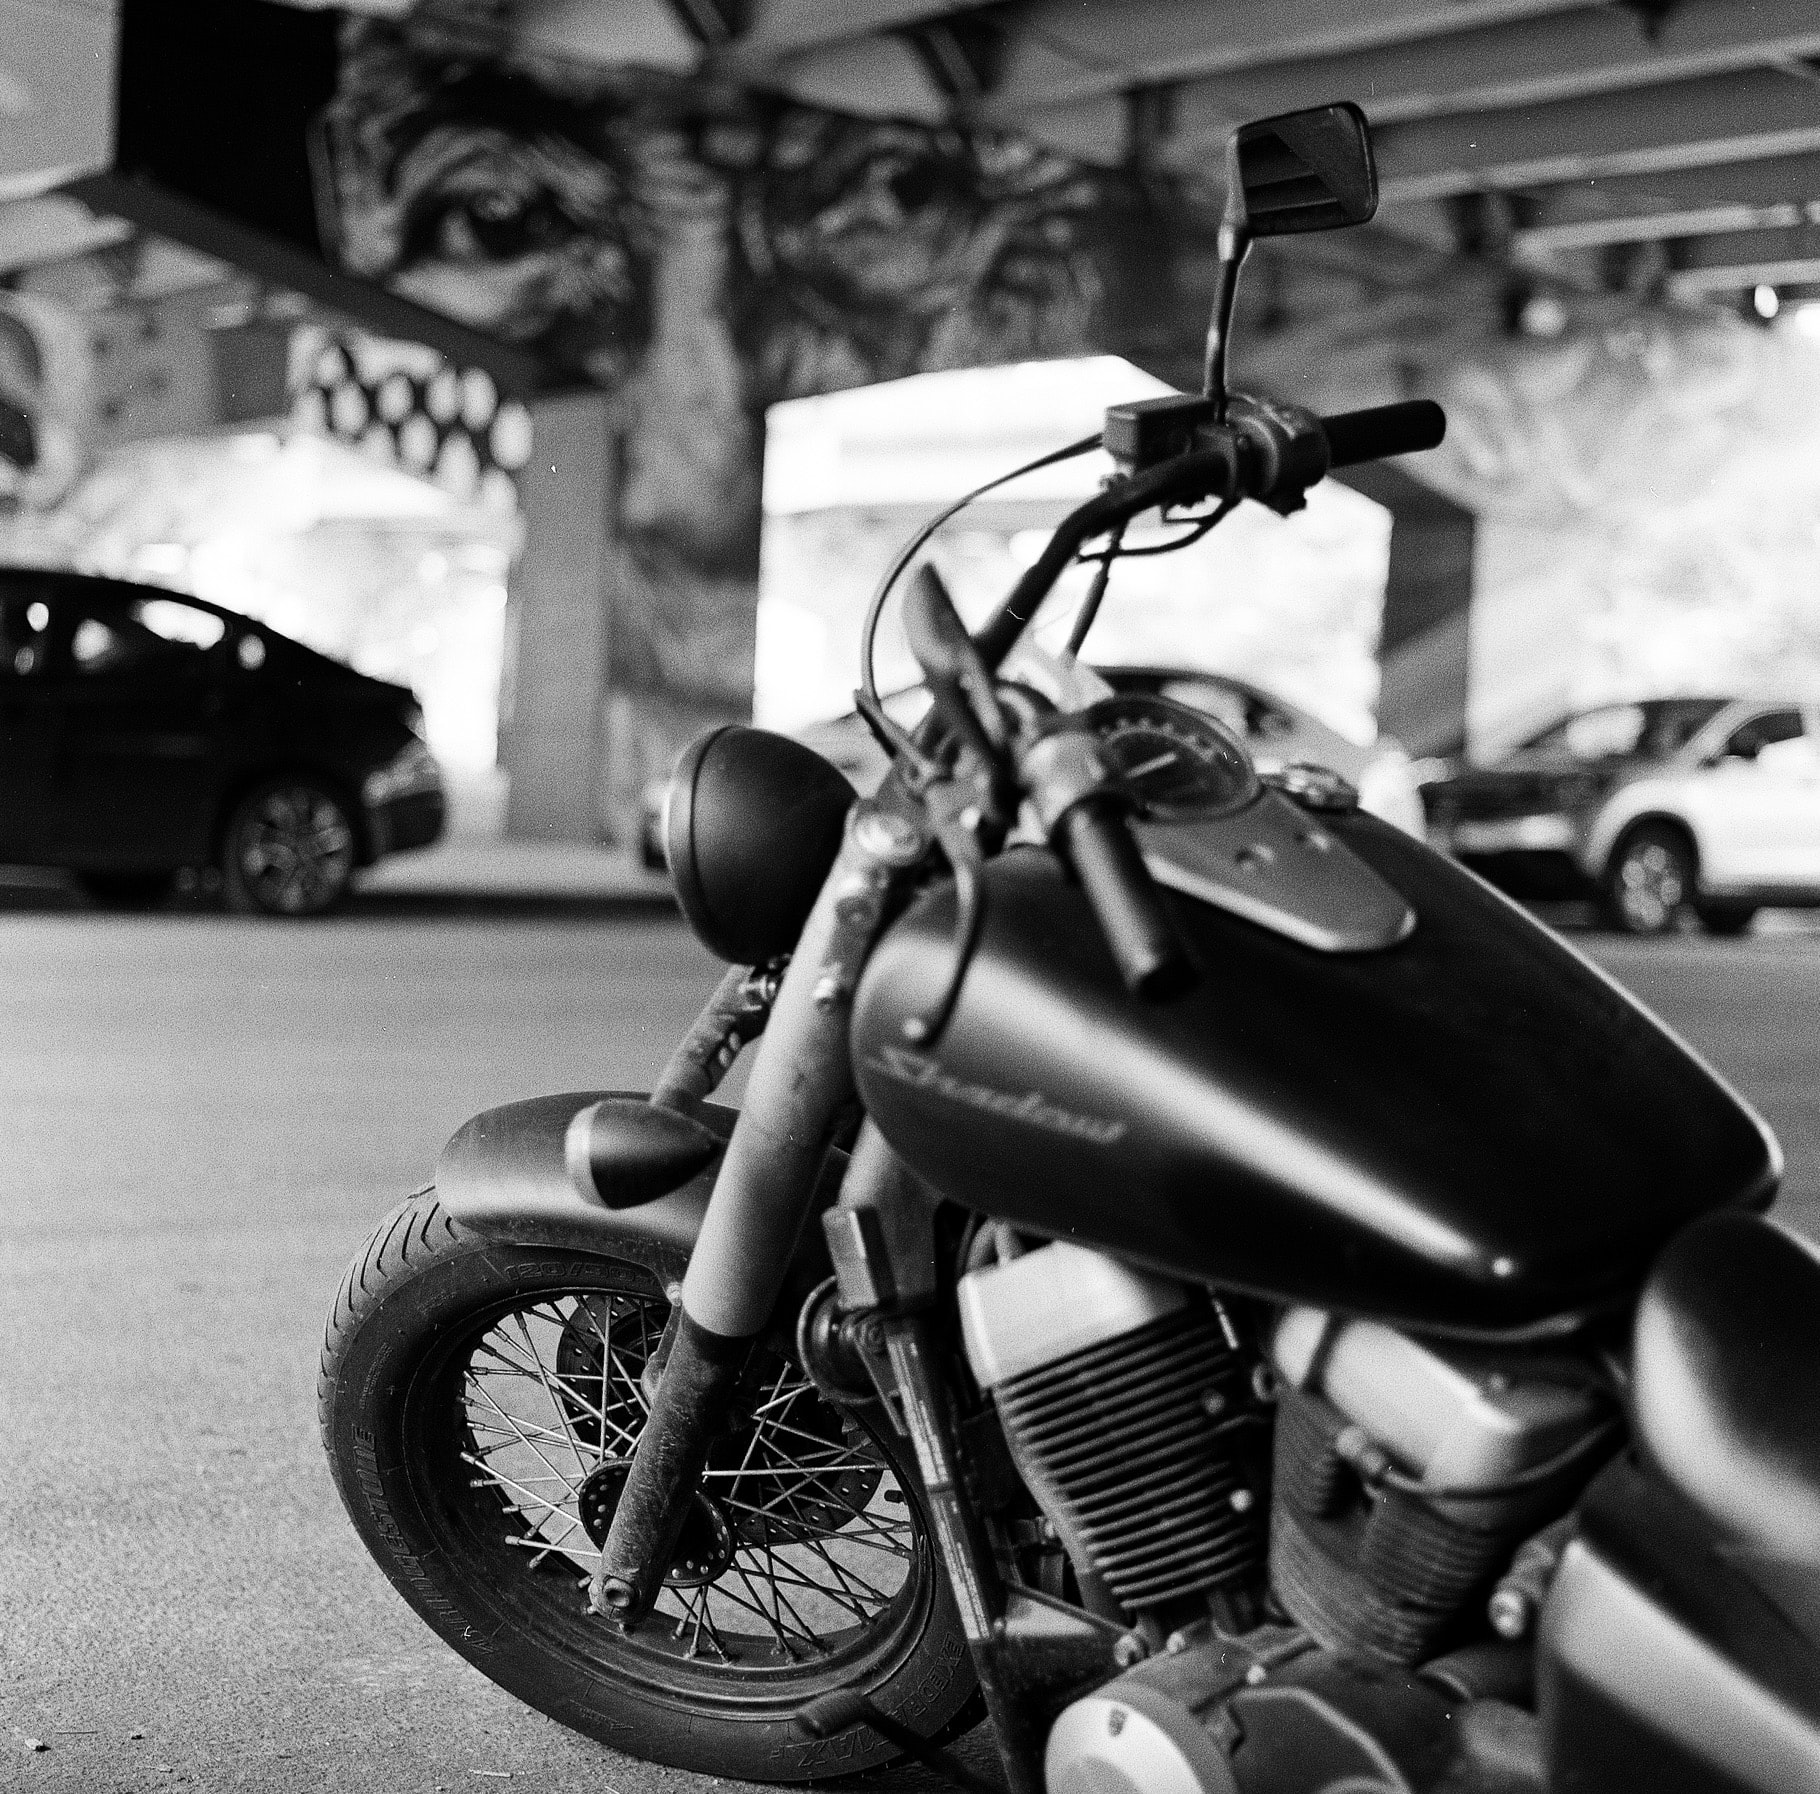 grayscale photography of standard motorcycle under bridge